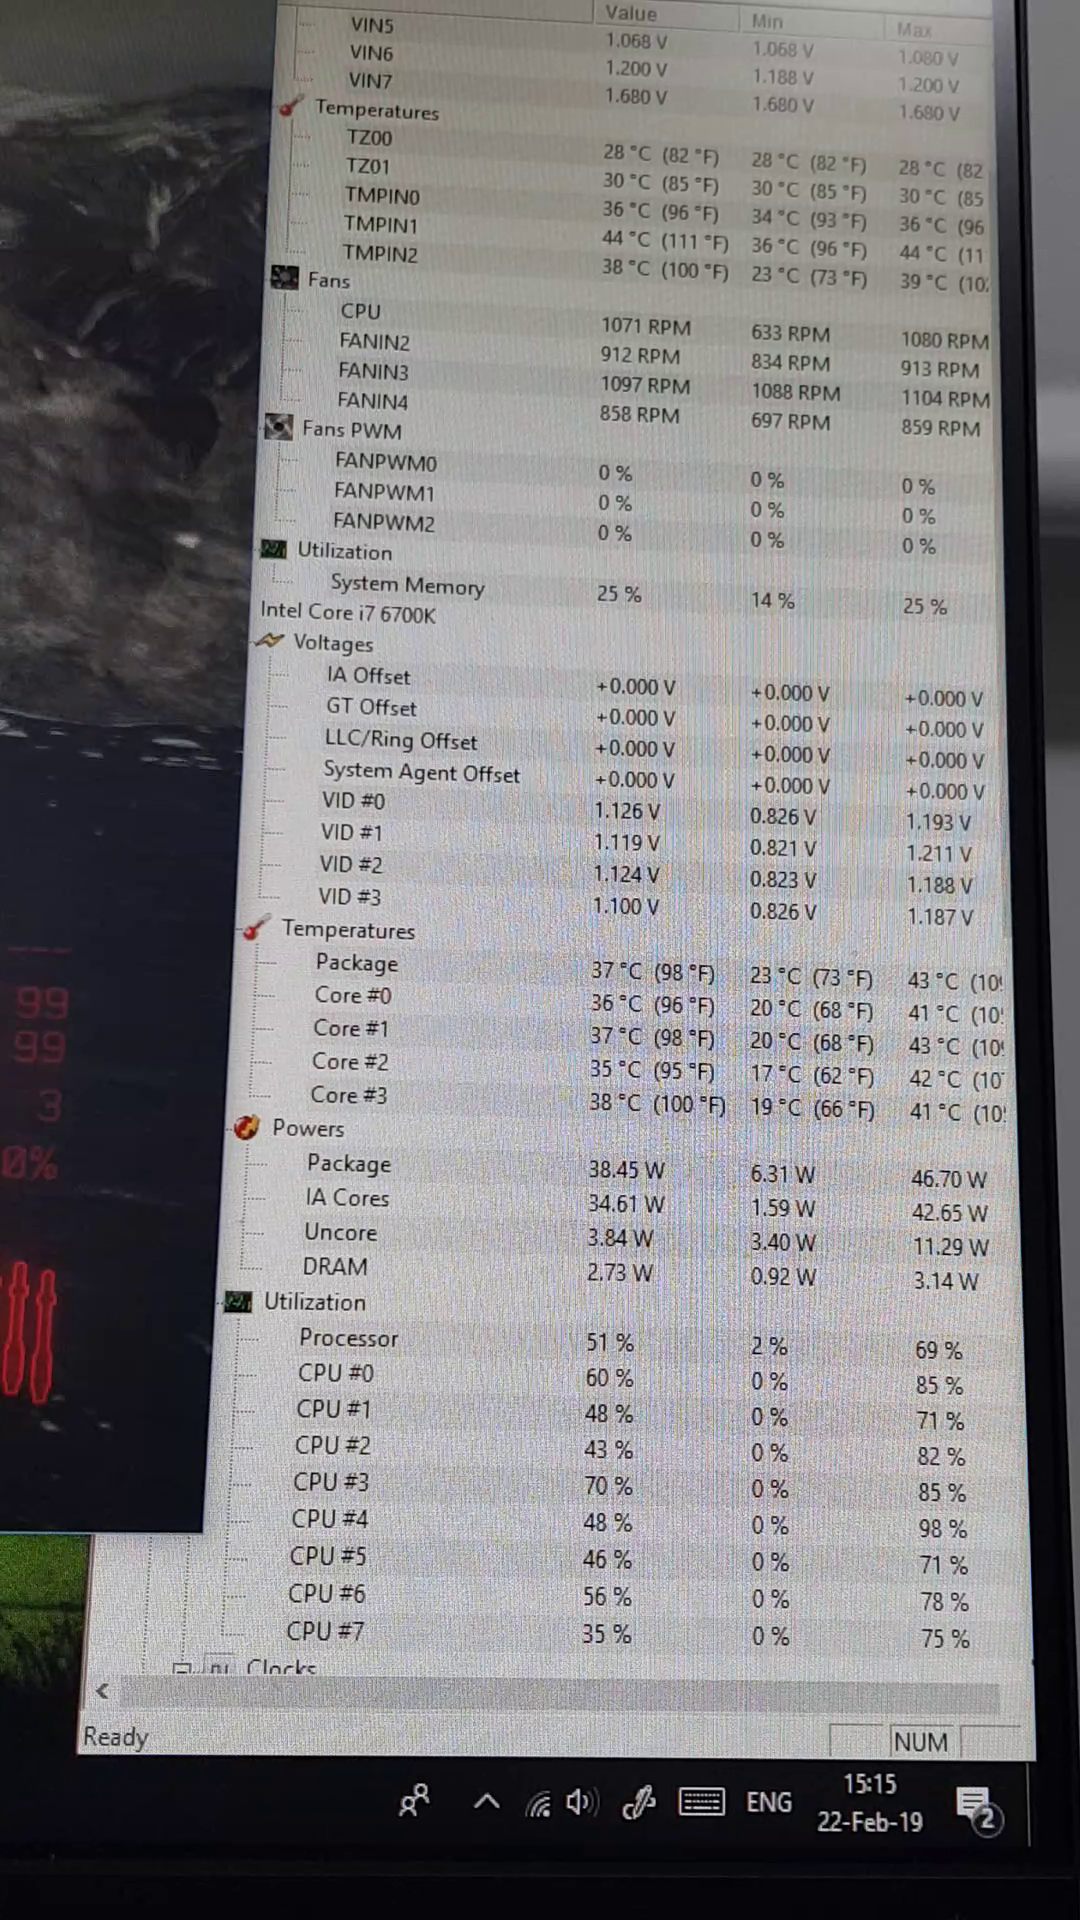 Computer power crashes in FPS intensive mid to high graphic detail